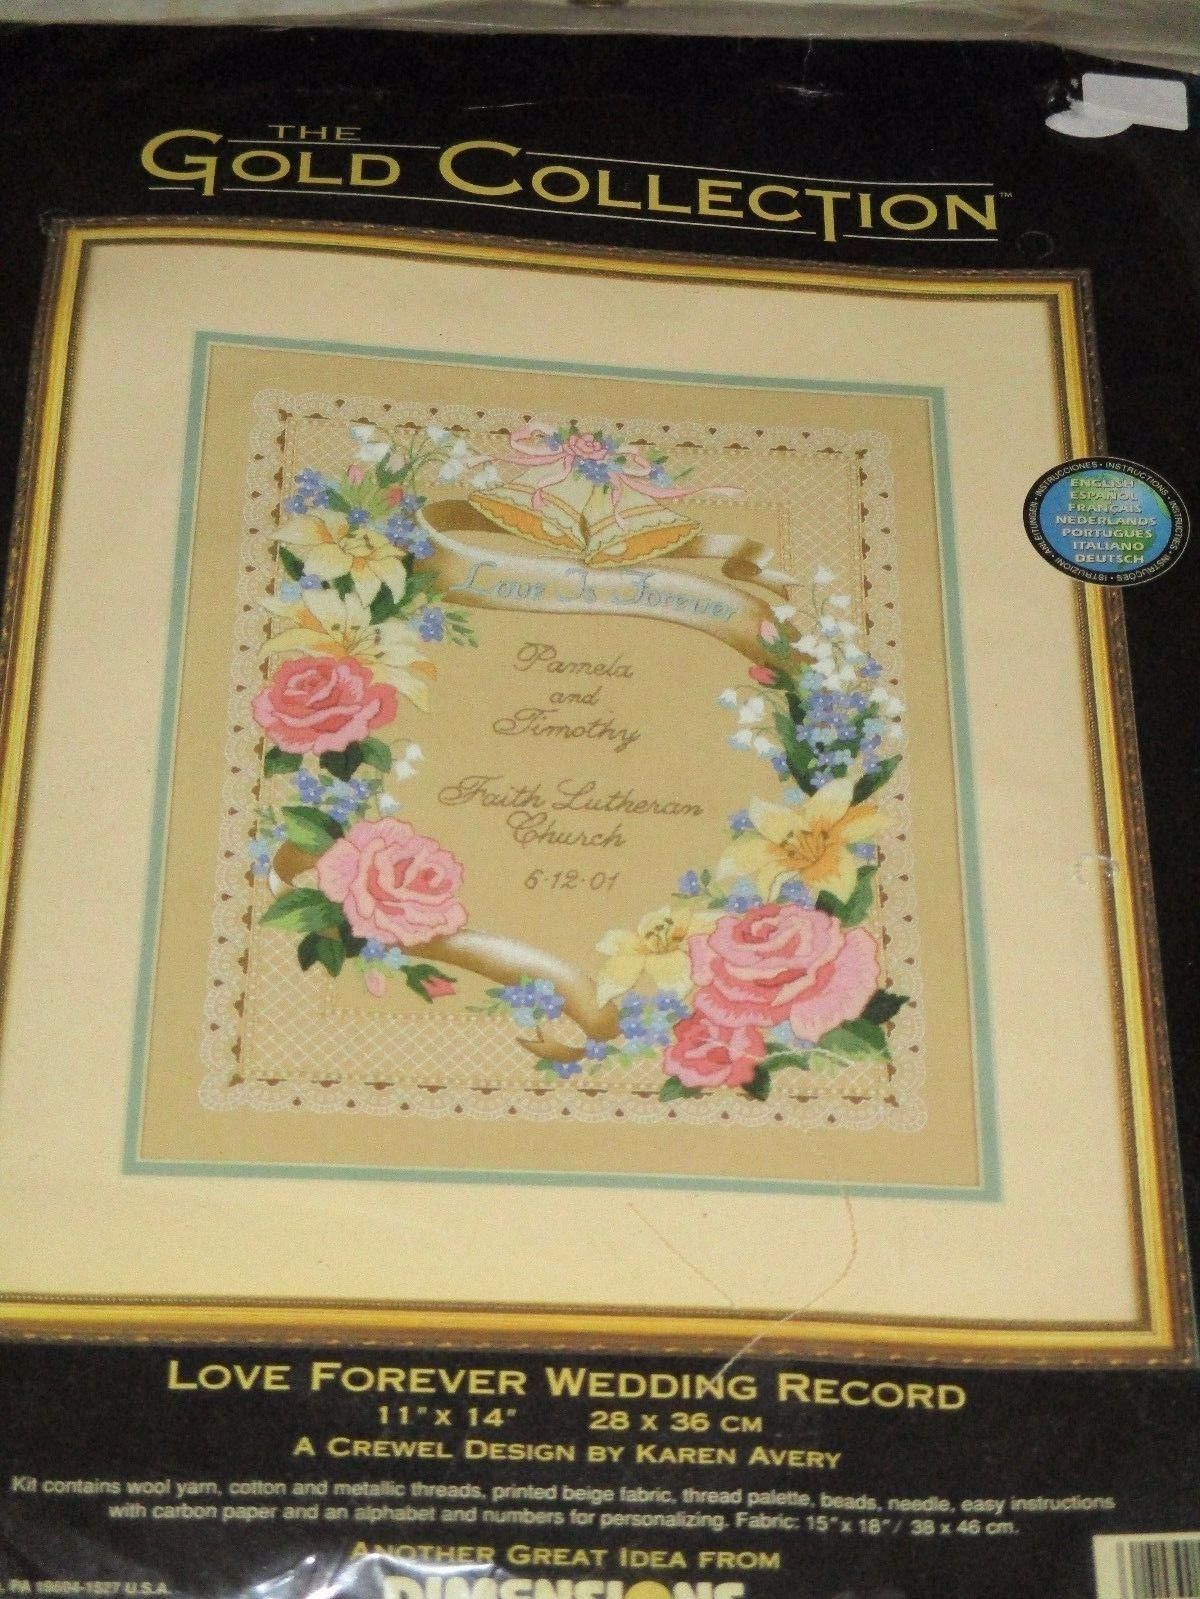 Simple Roses Wedding Record Dimensions Crewel Embroidery Kit